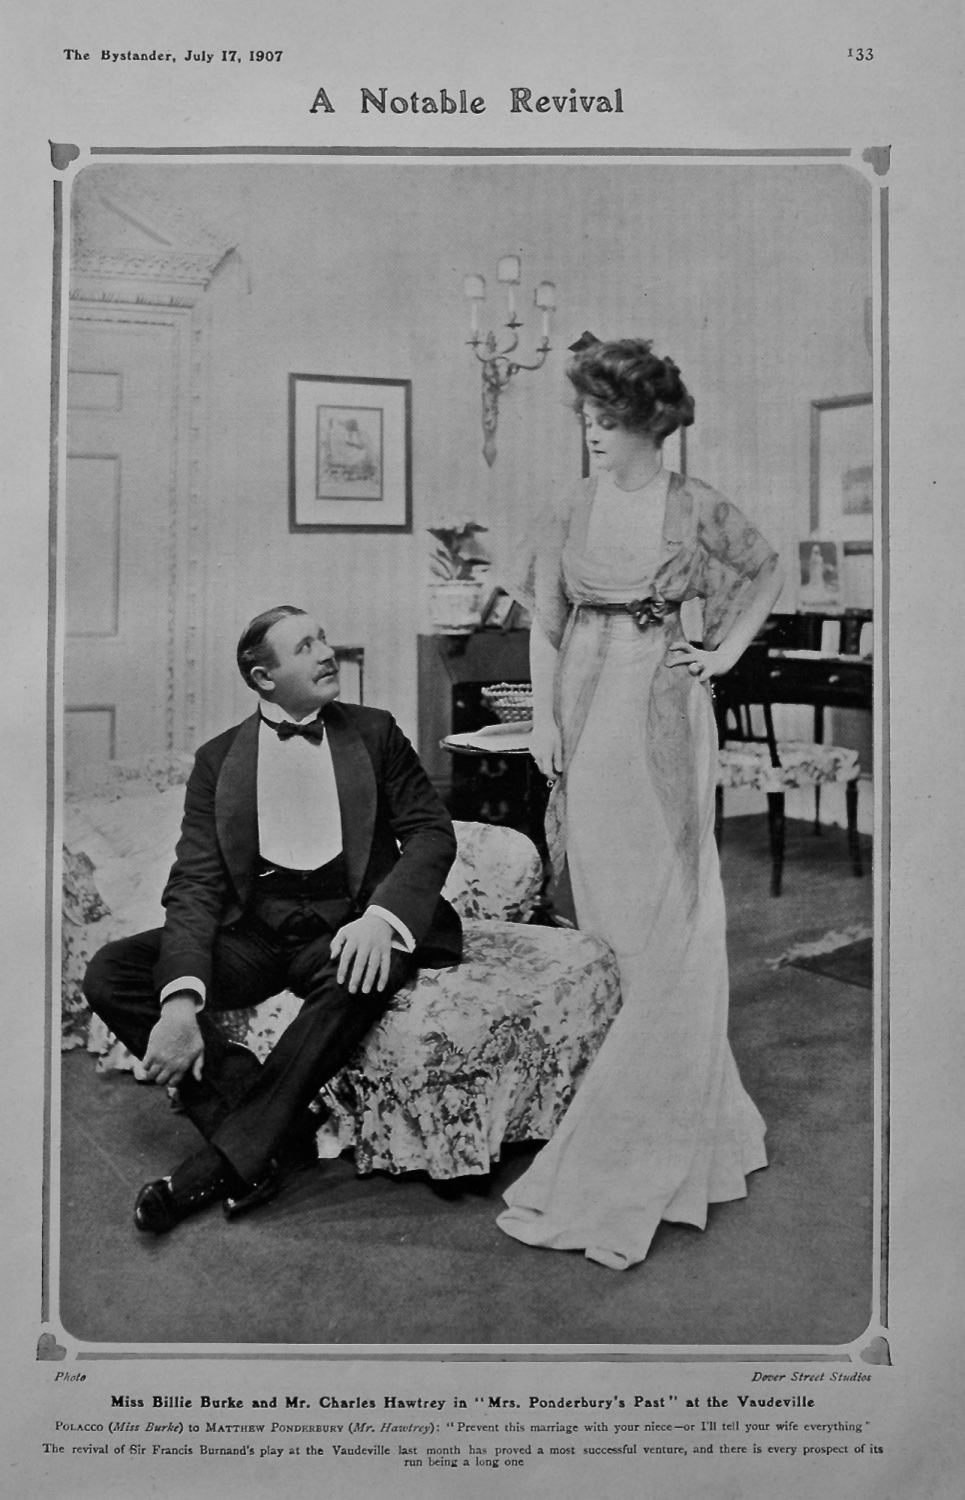 A Notable Revival : Miss Billie Burke and Mr. Charles Hawtrey in